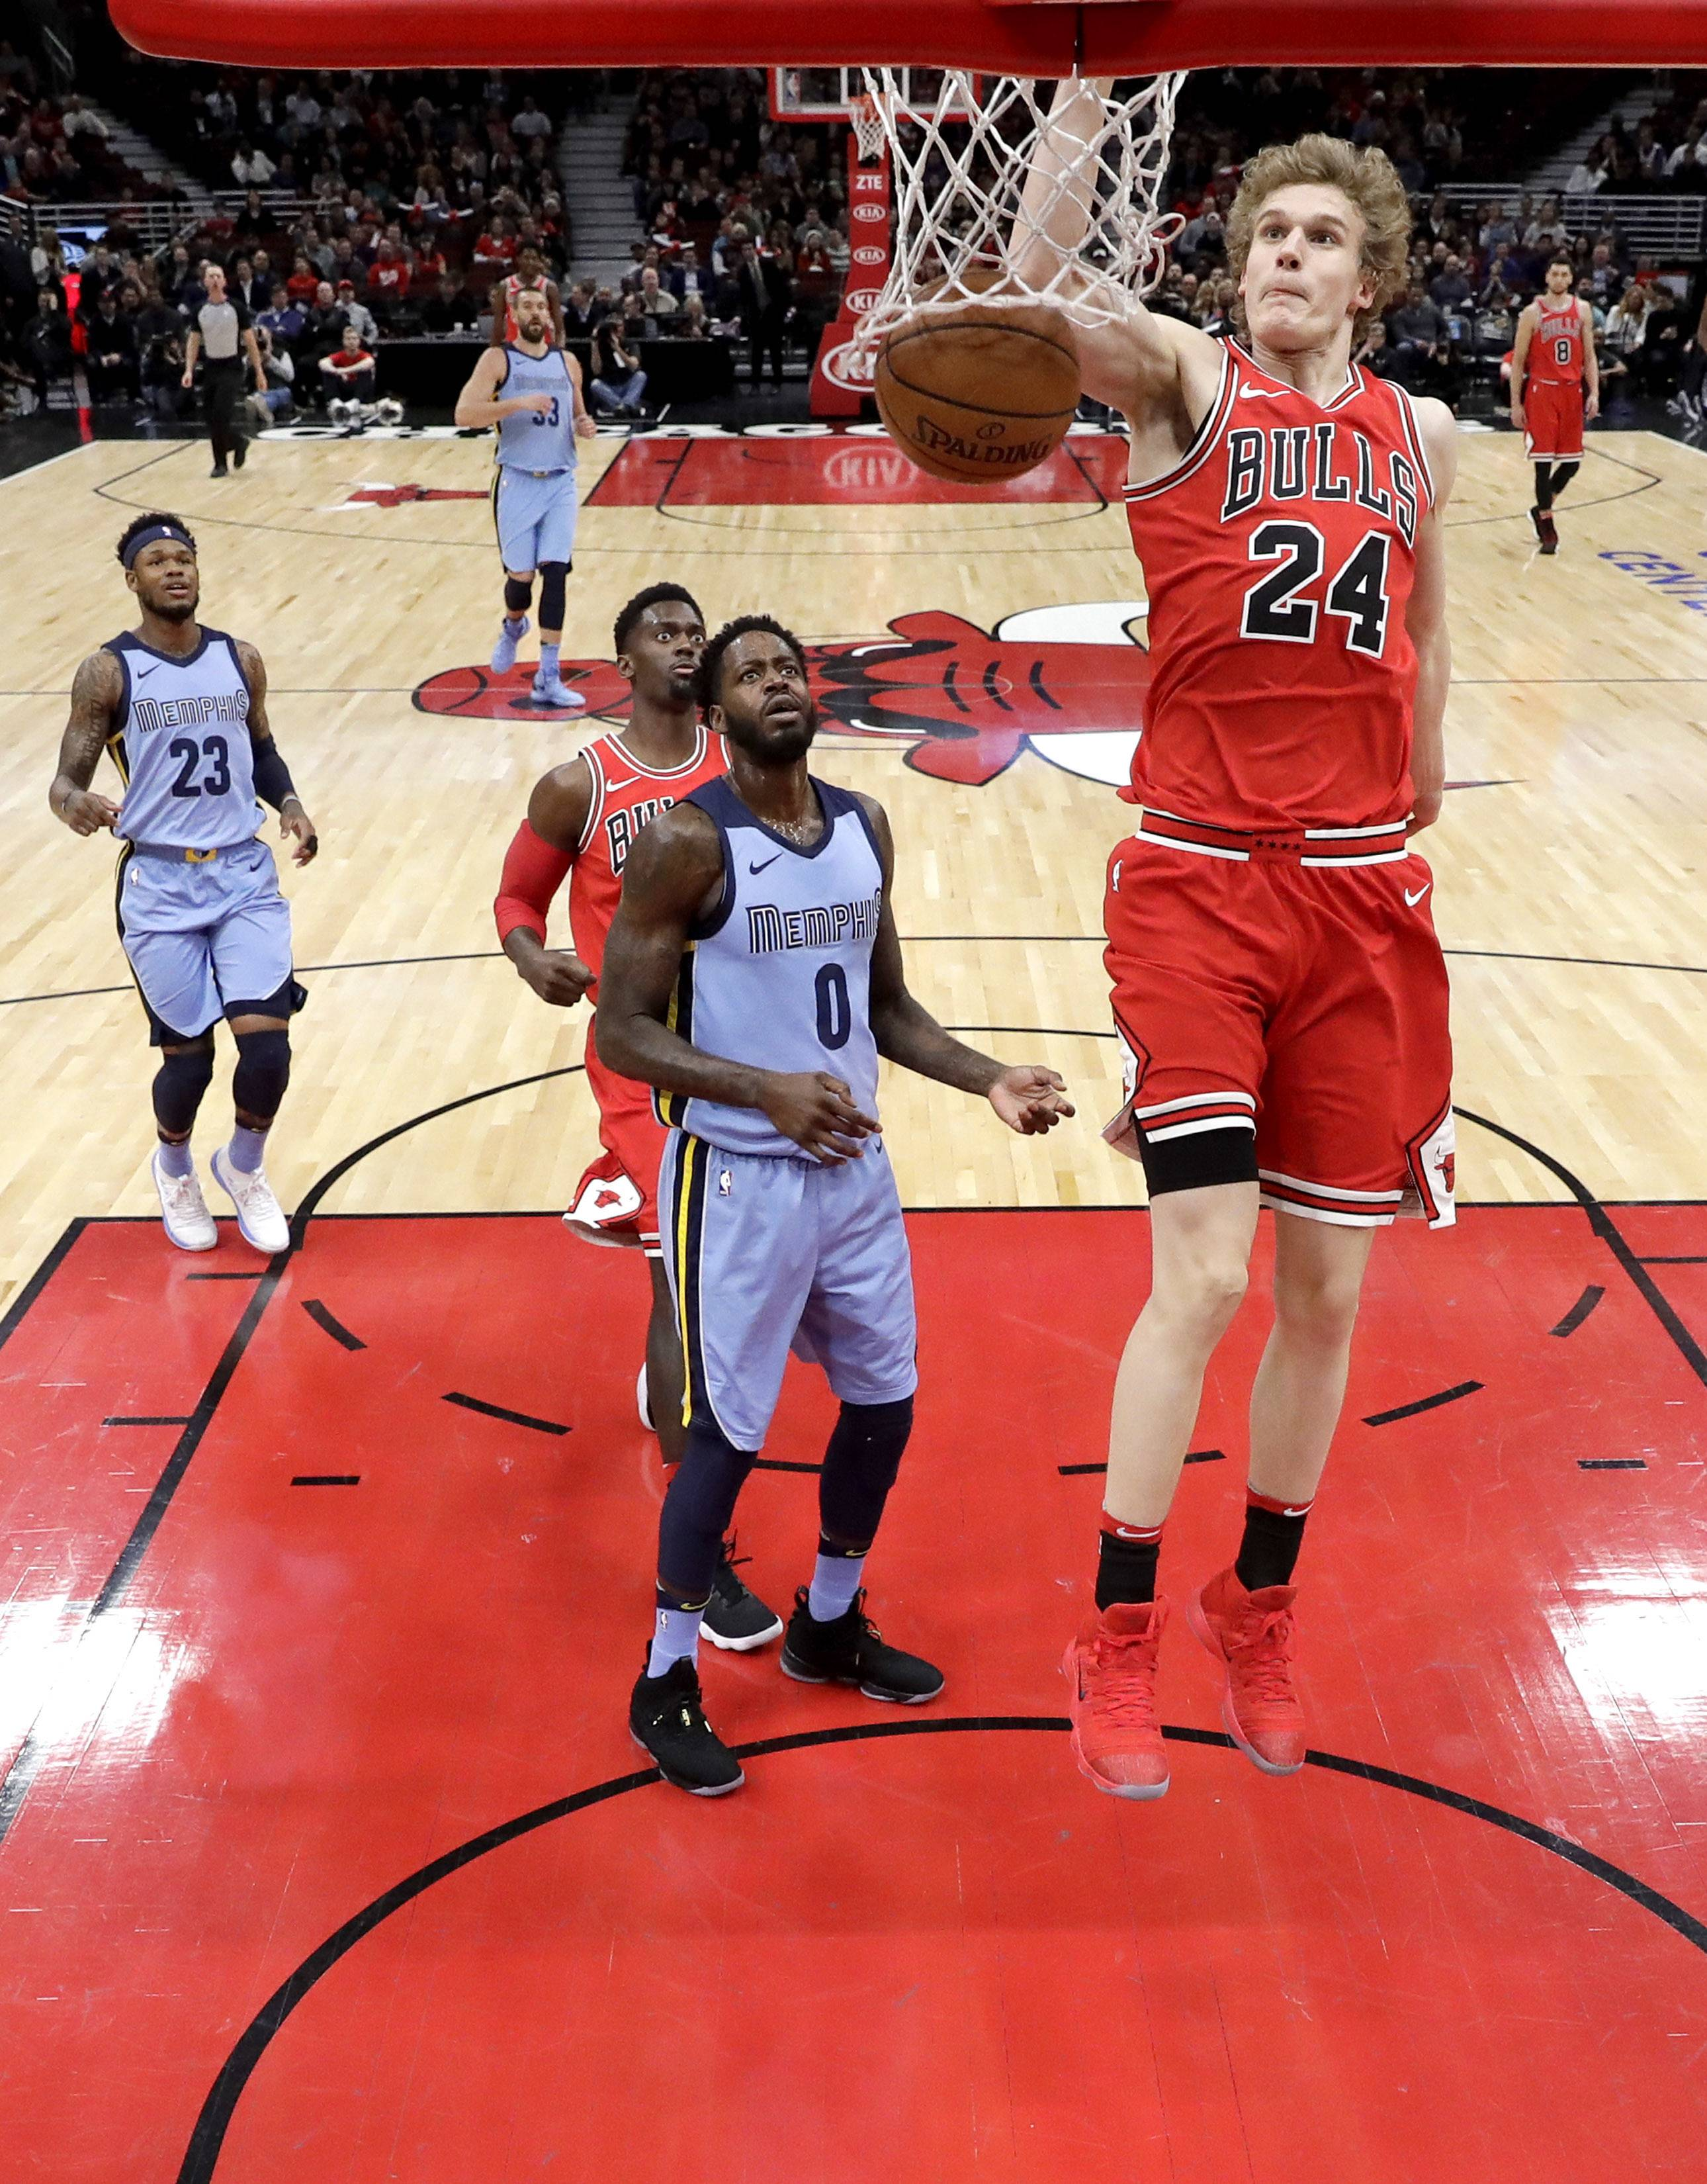 The Bulls are hoping to get through the end of the season without any more atrocious losses like the one suffered Wednesday against Denver. Rookie Lauri Markkanen said he feels ready to return from a sore back and could play Friday against Milwaukee.